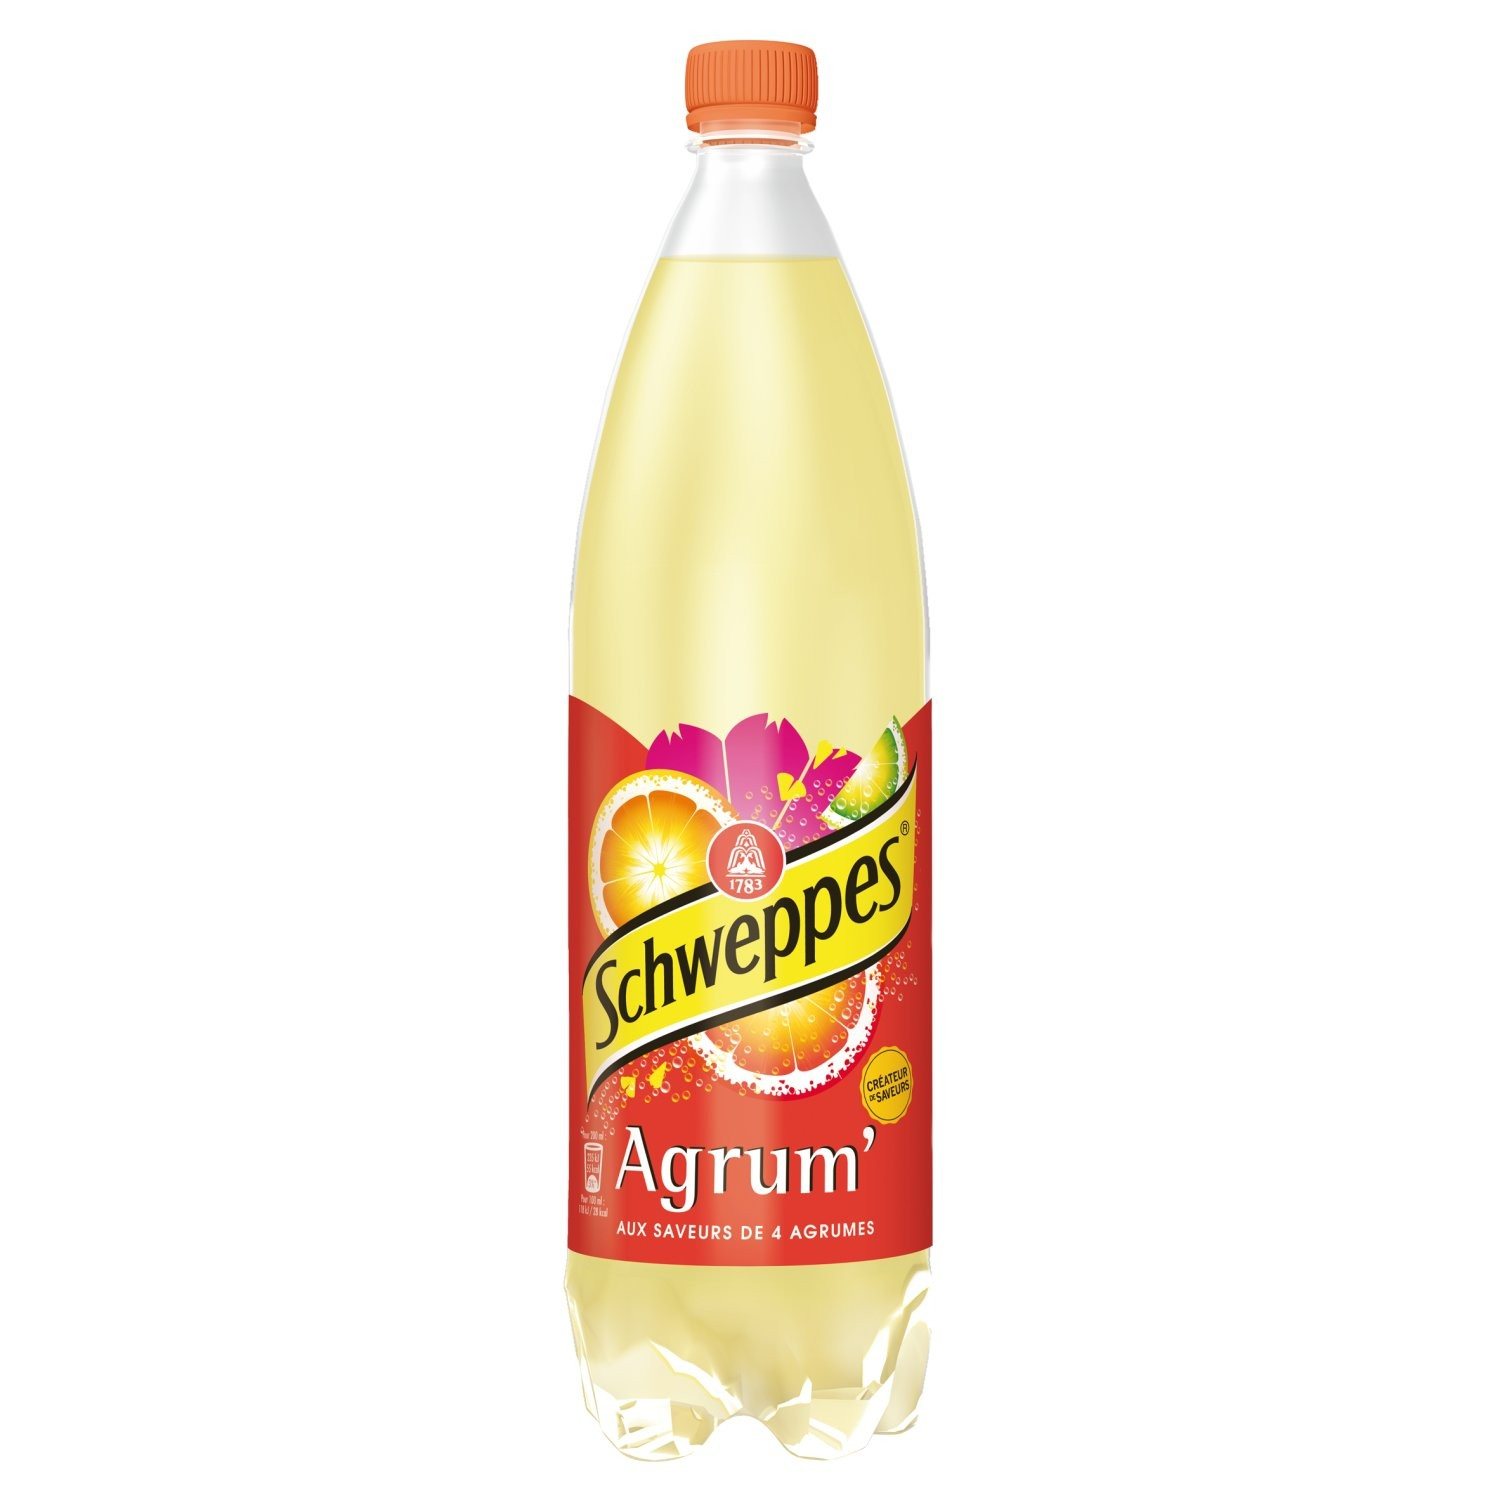 Schweppes Agrumes 1.5L